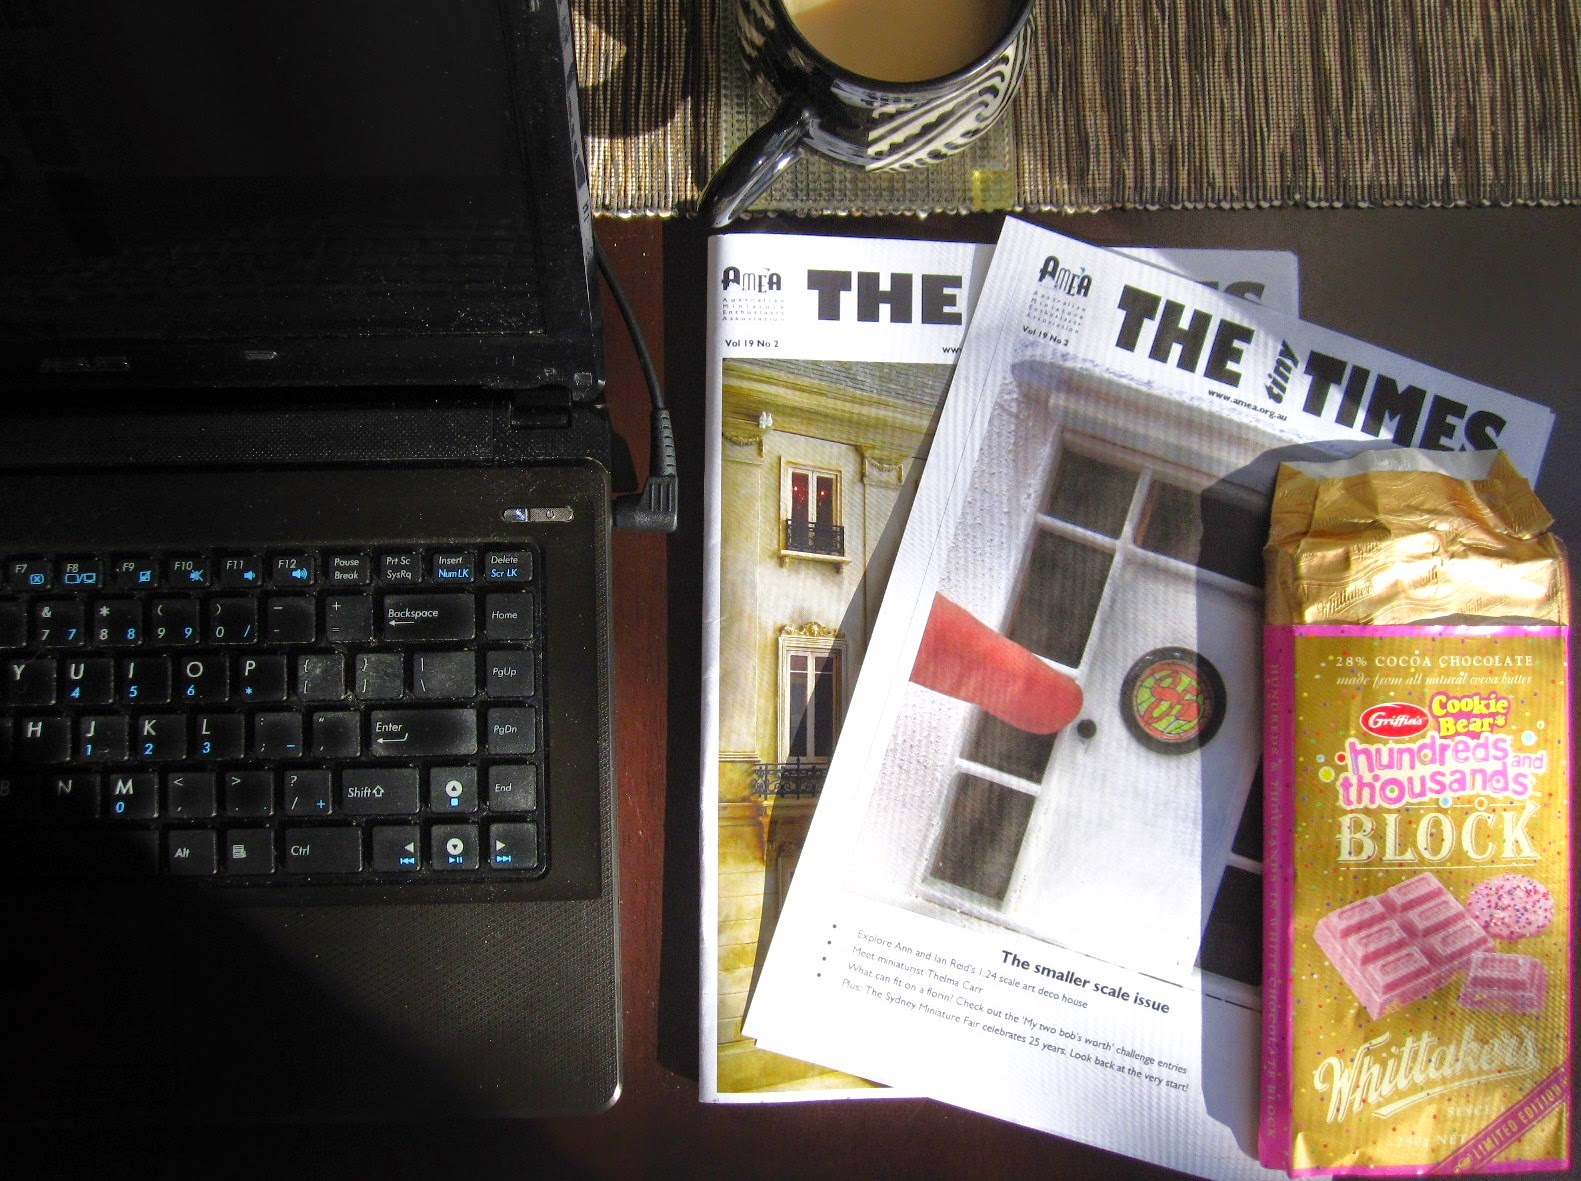 Laptop and mug of tea, with two issues of The tiny Times and a bar of Whittaker's hundreds and thousands chocolate next to it.